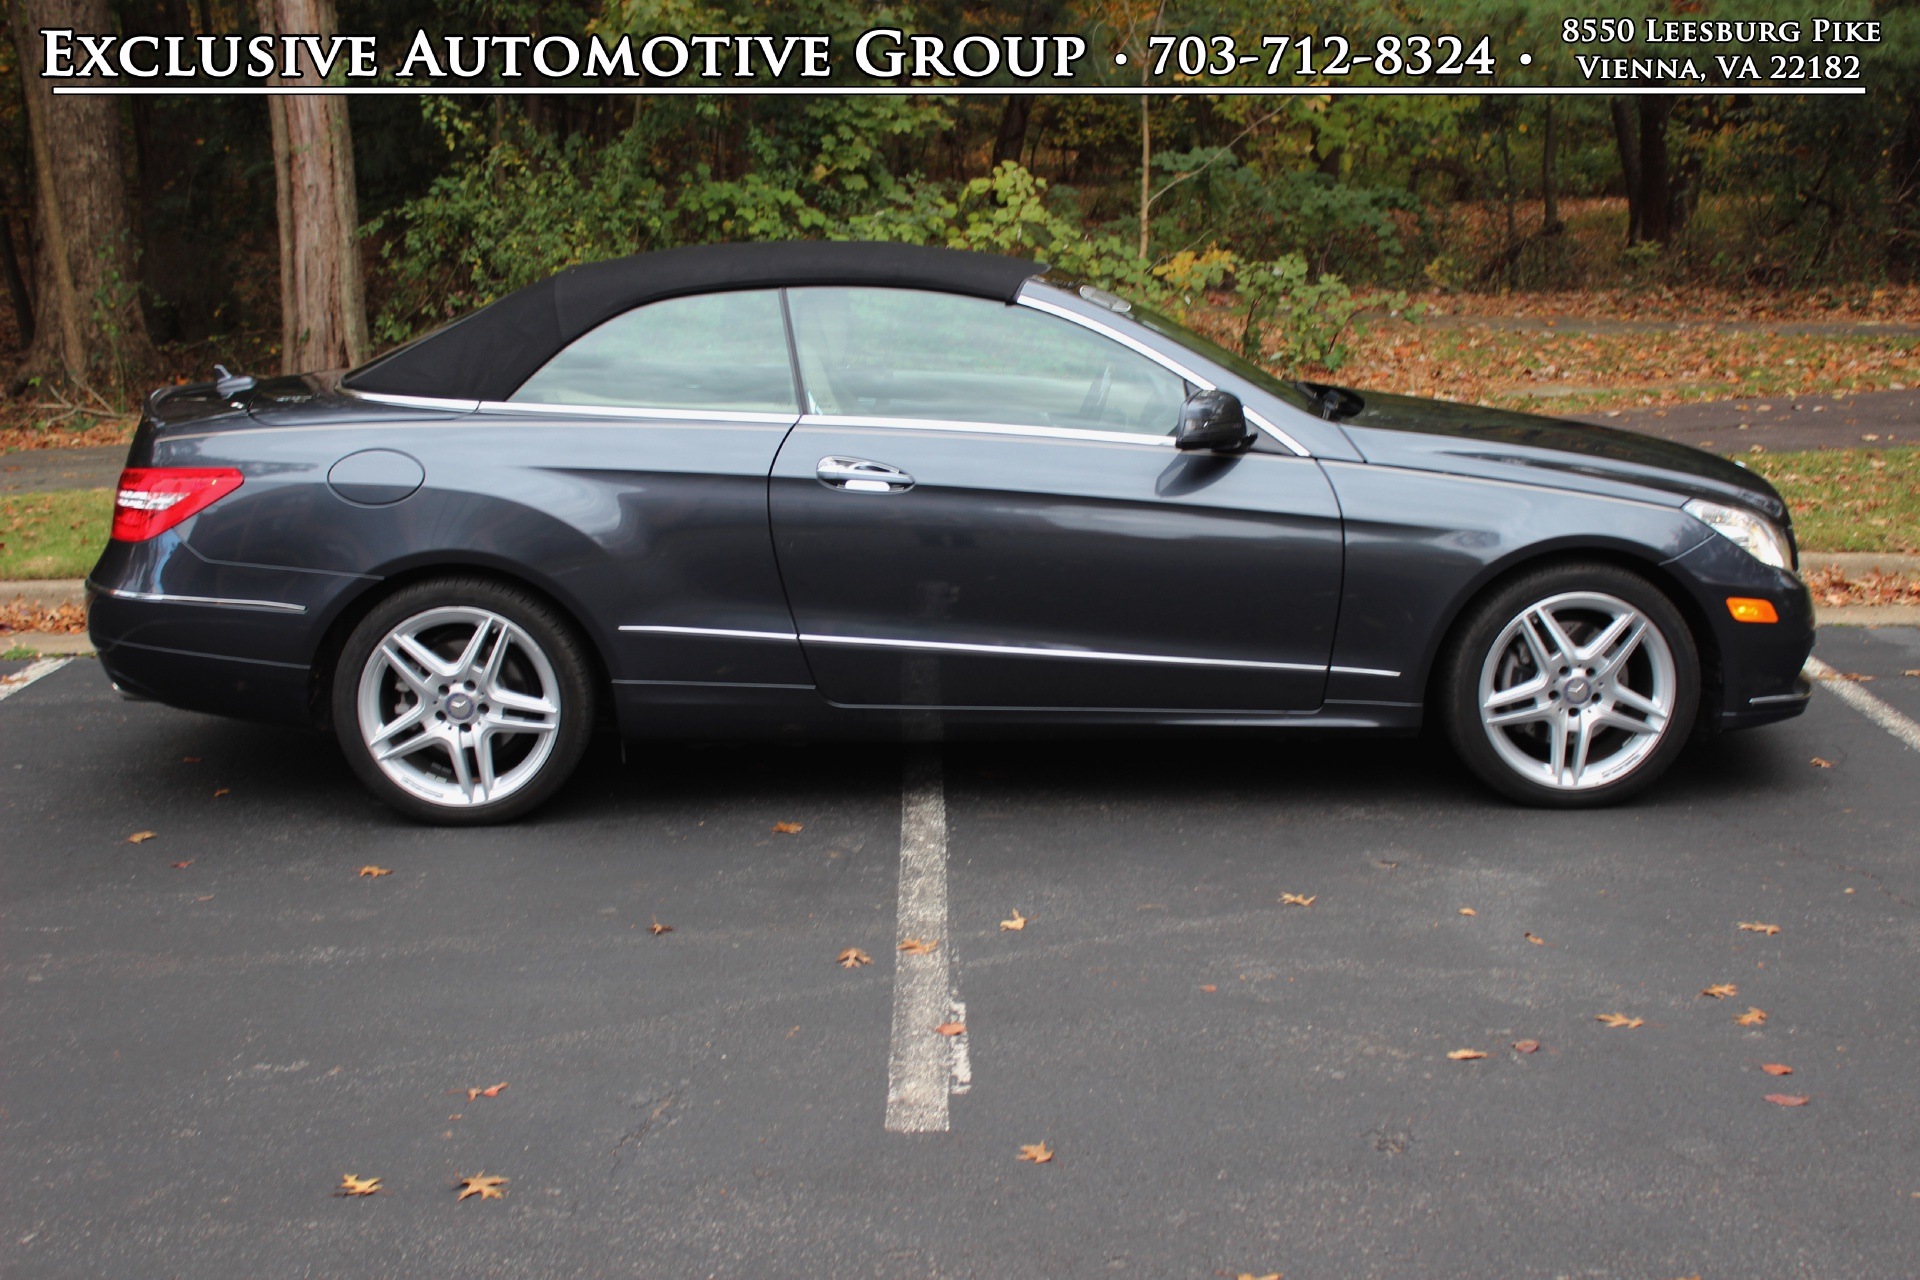 2013 mercedes benz e350 cabriolet stock p208908 for sale for Mercedes benz lynchburg va